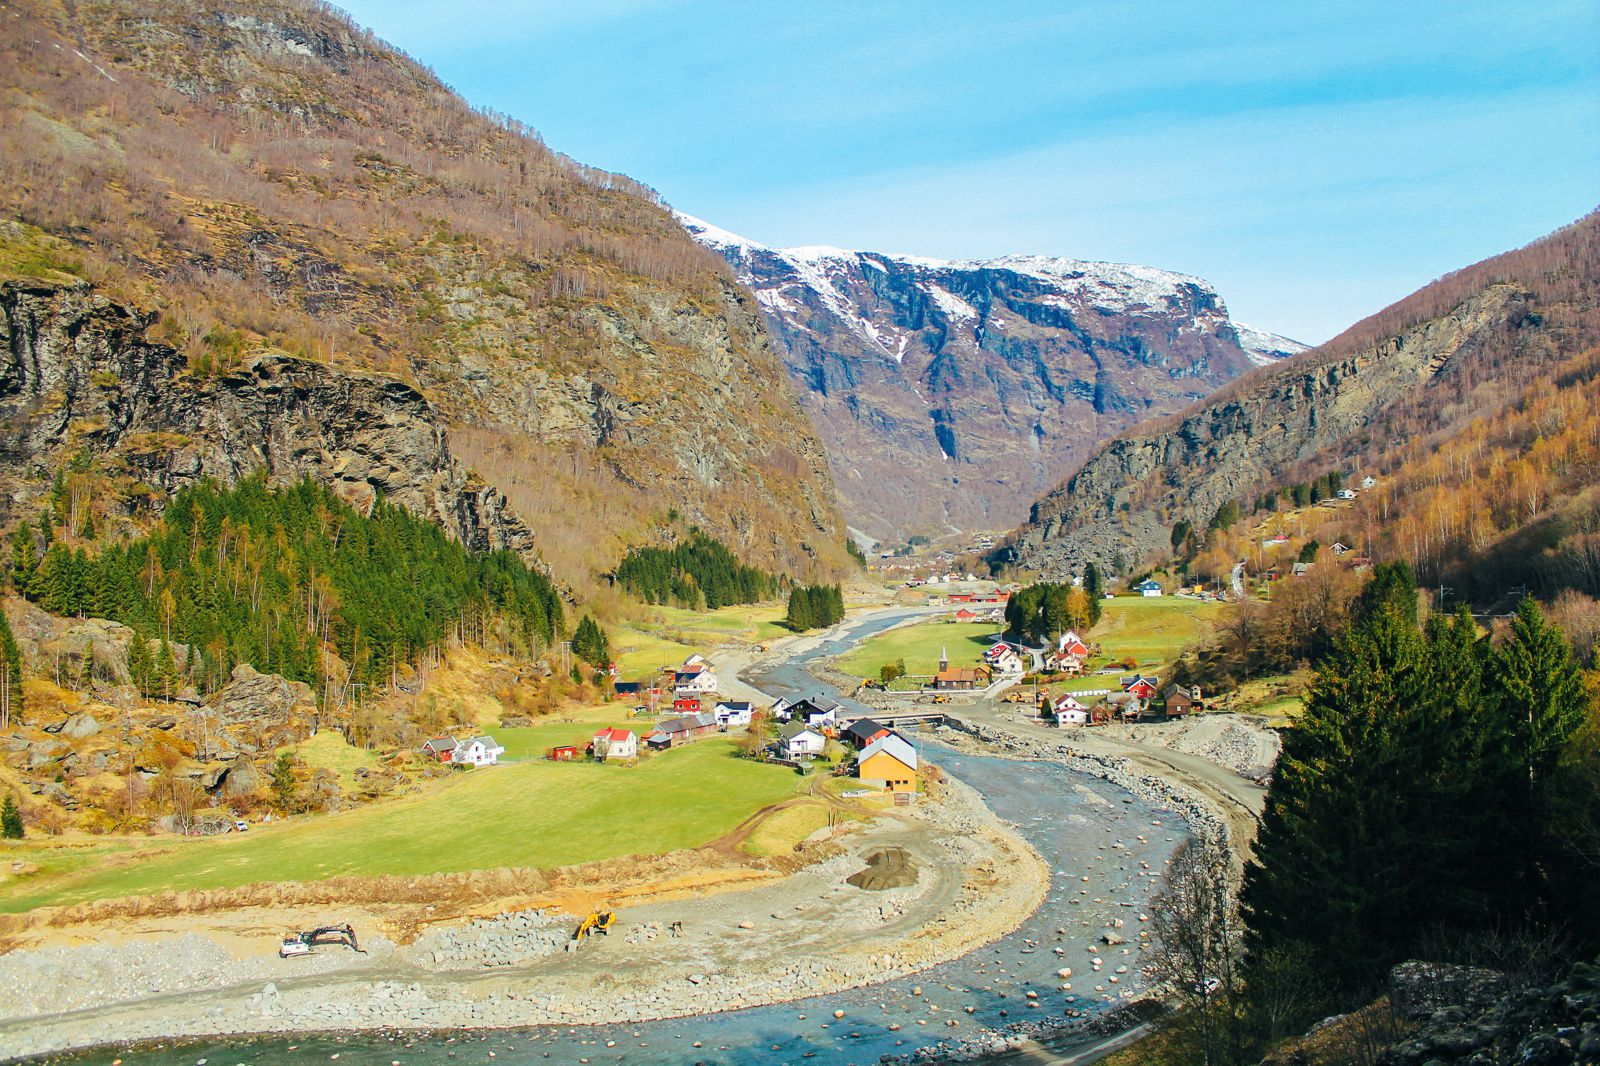 The Flamsbana Experience - Norway's Most Scenic Train Journey! (21)